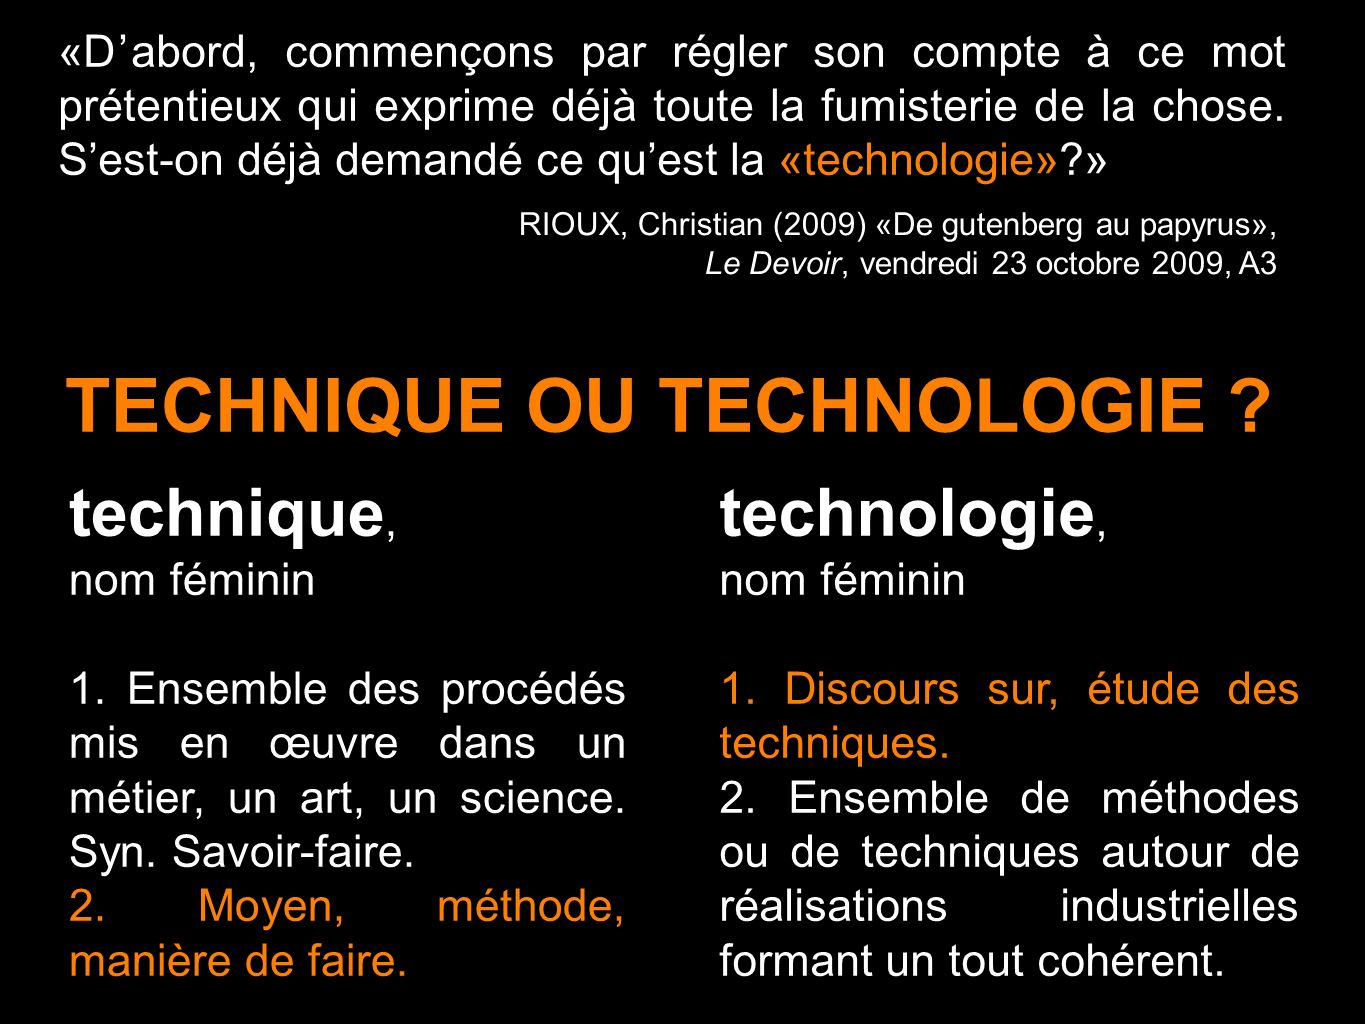 TECHNIQUE OU TECHNOLOGIE